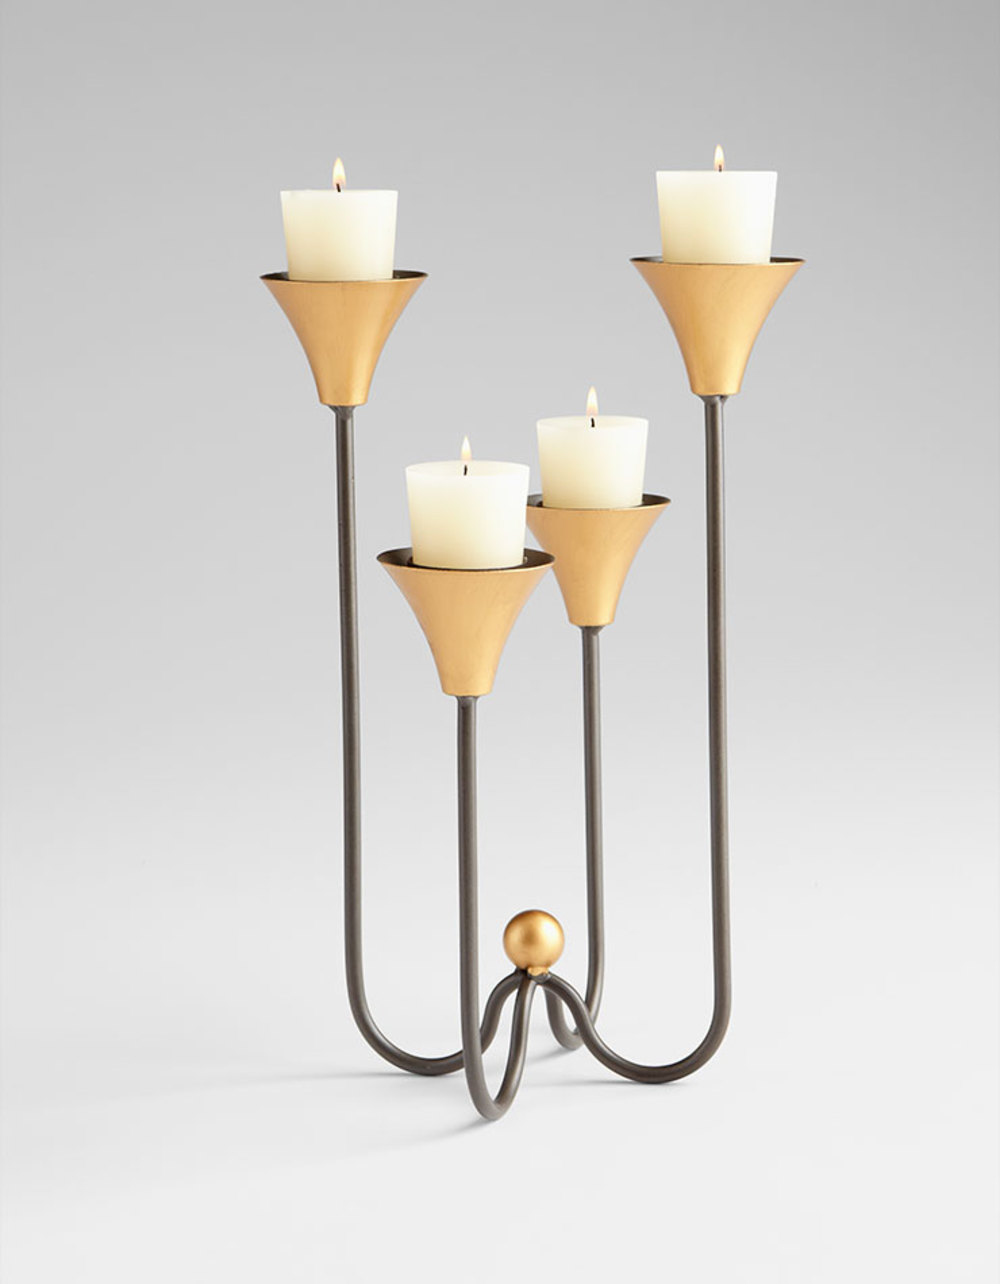 Cyan Designs - Small Bell Tower Candleholder